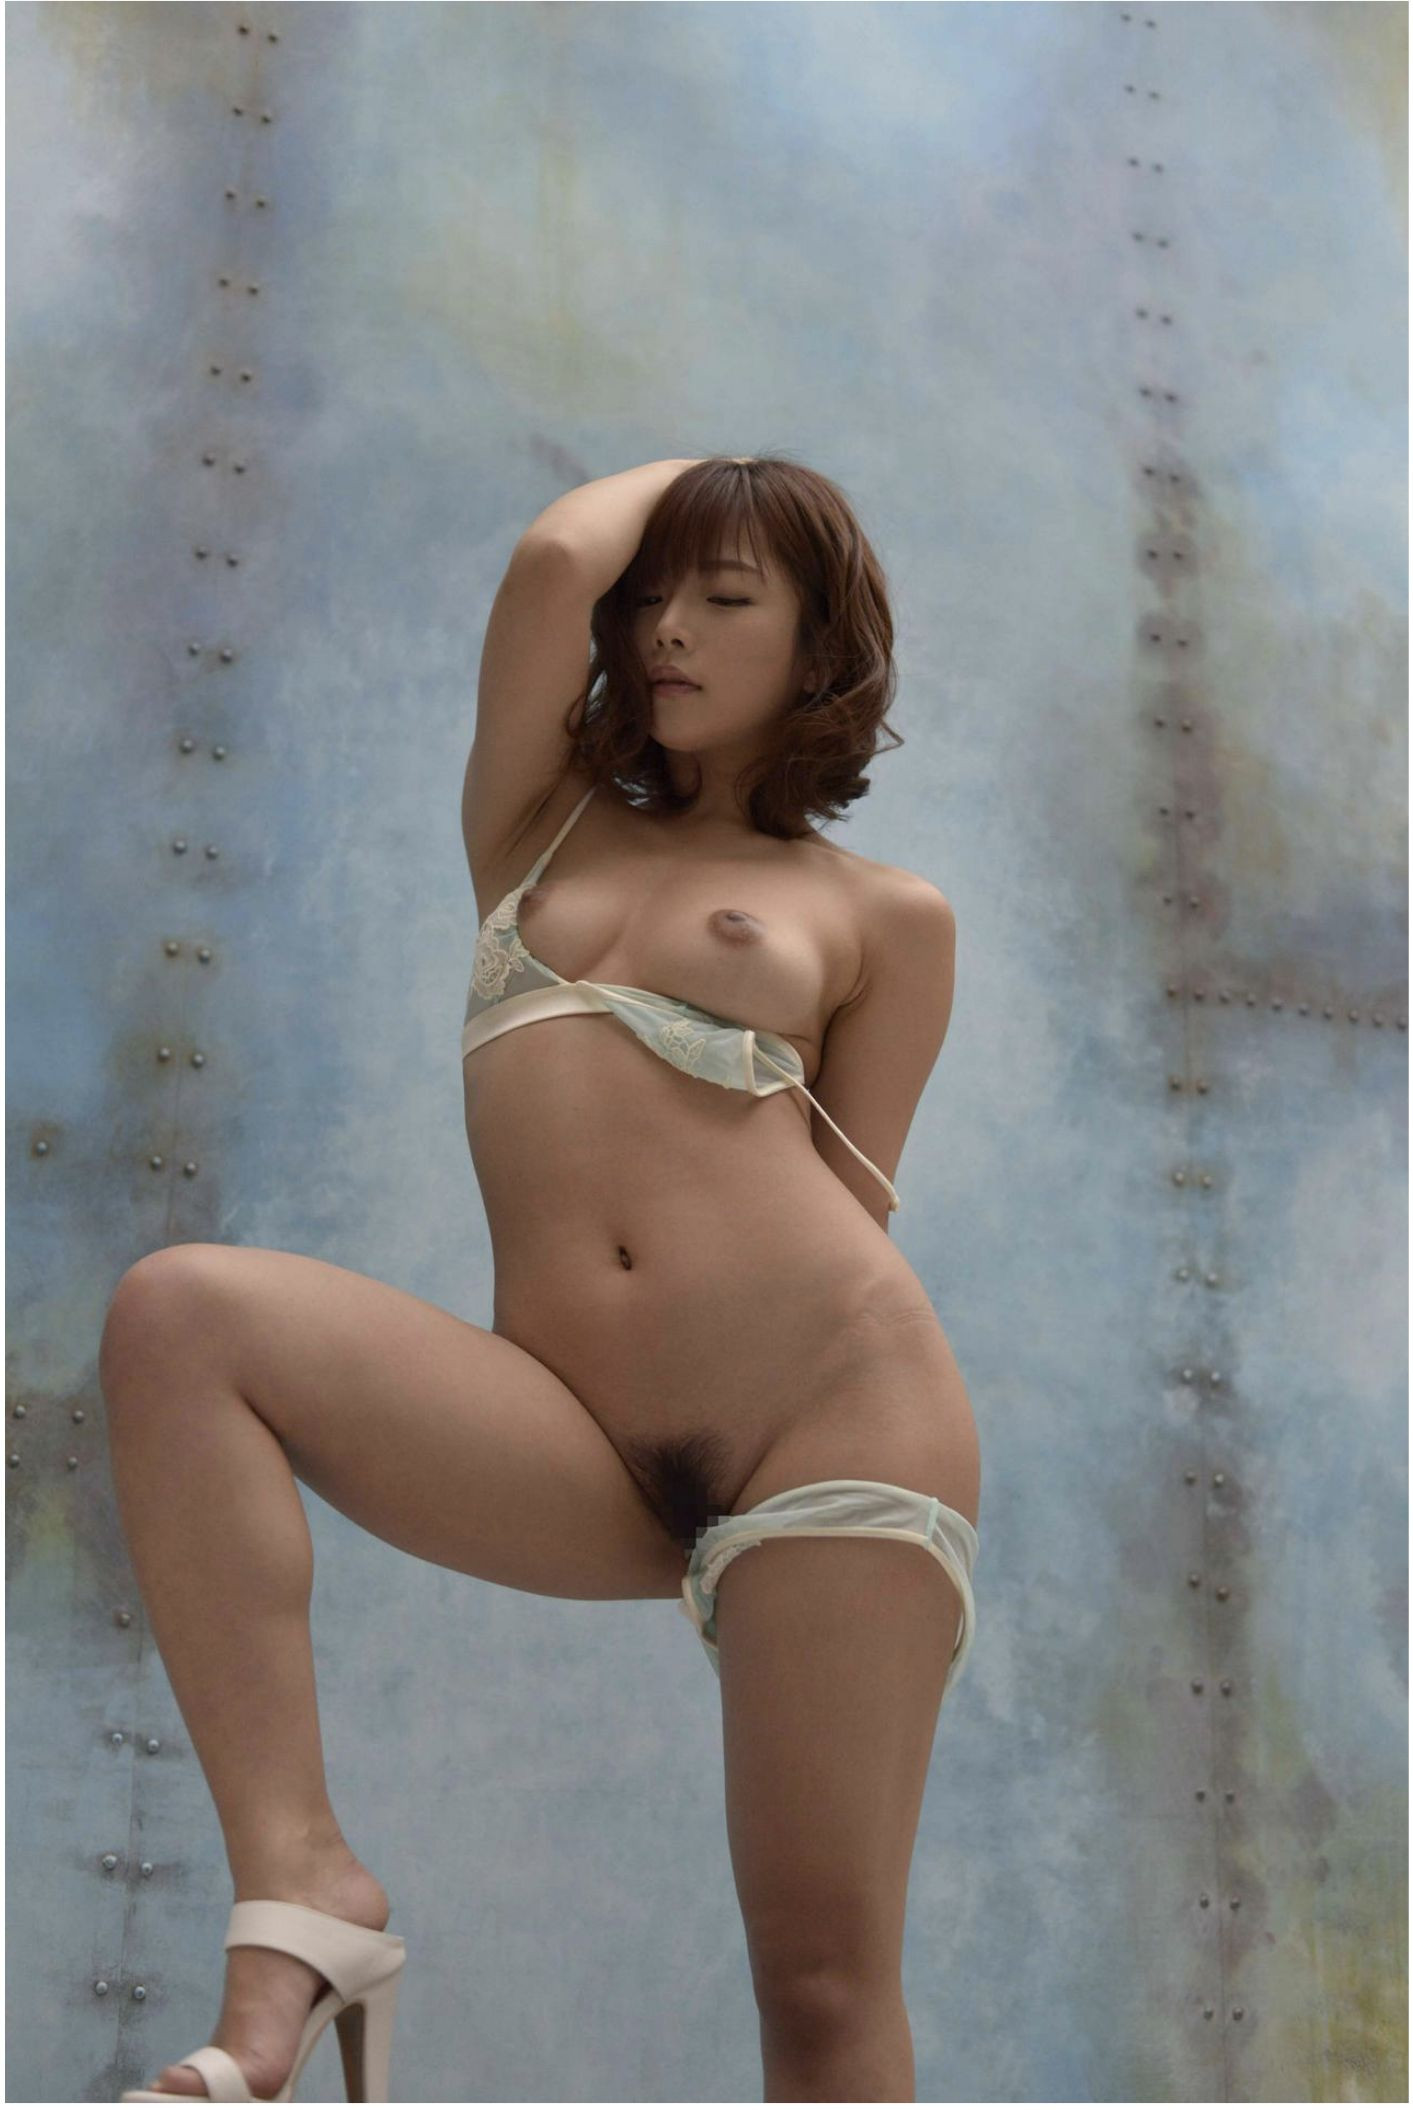 SOFT ON DEMAND GRAVURE COLLECTION 紗倉まな04 photo 096